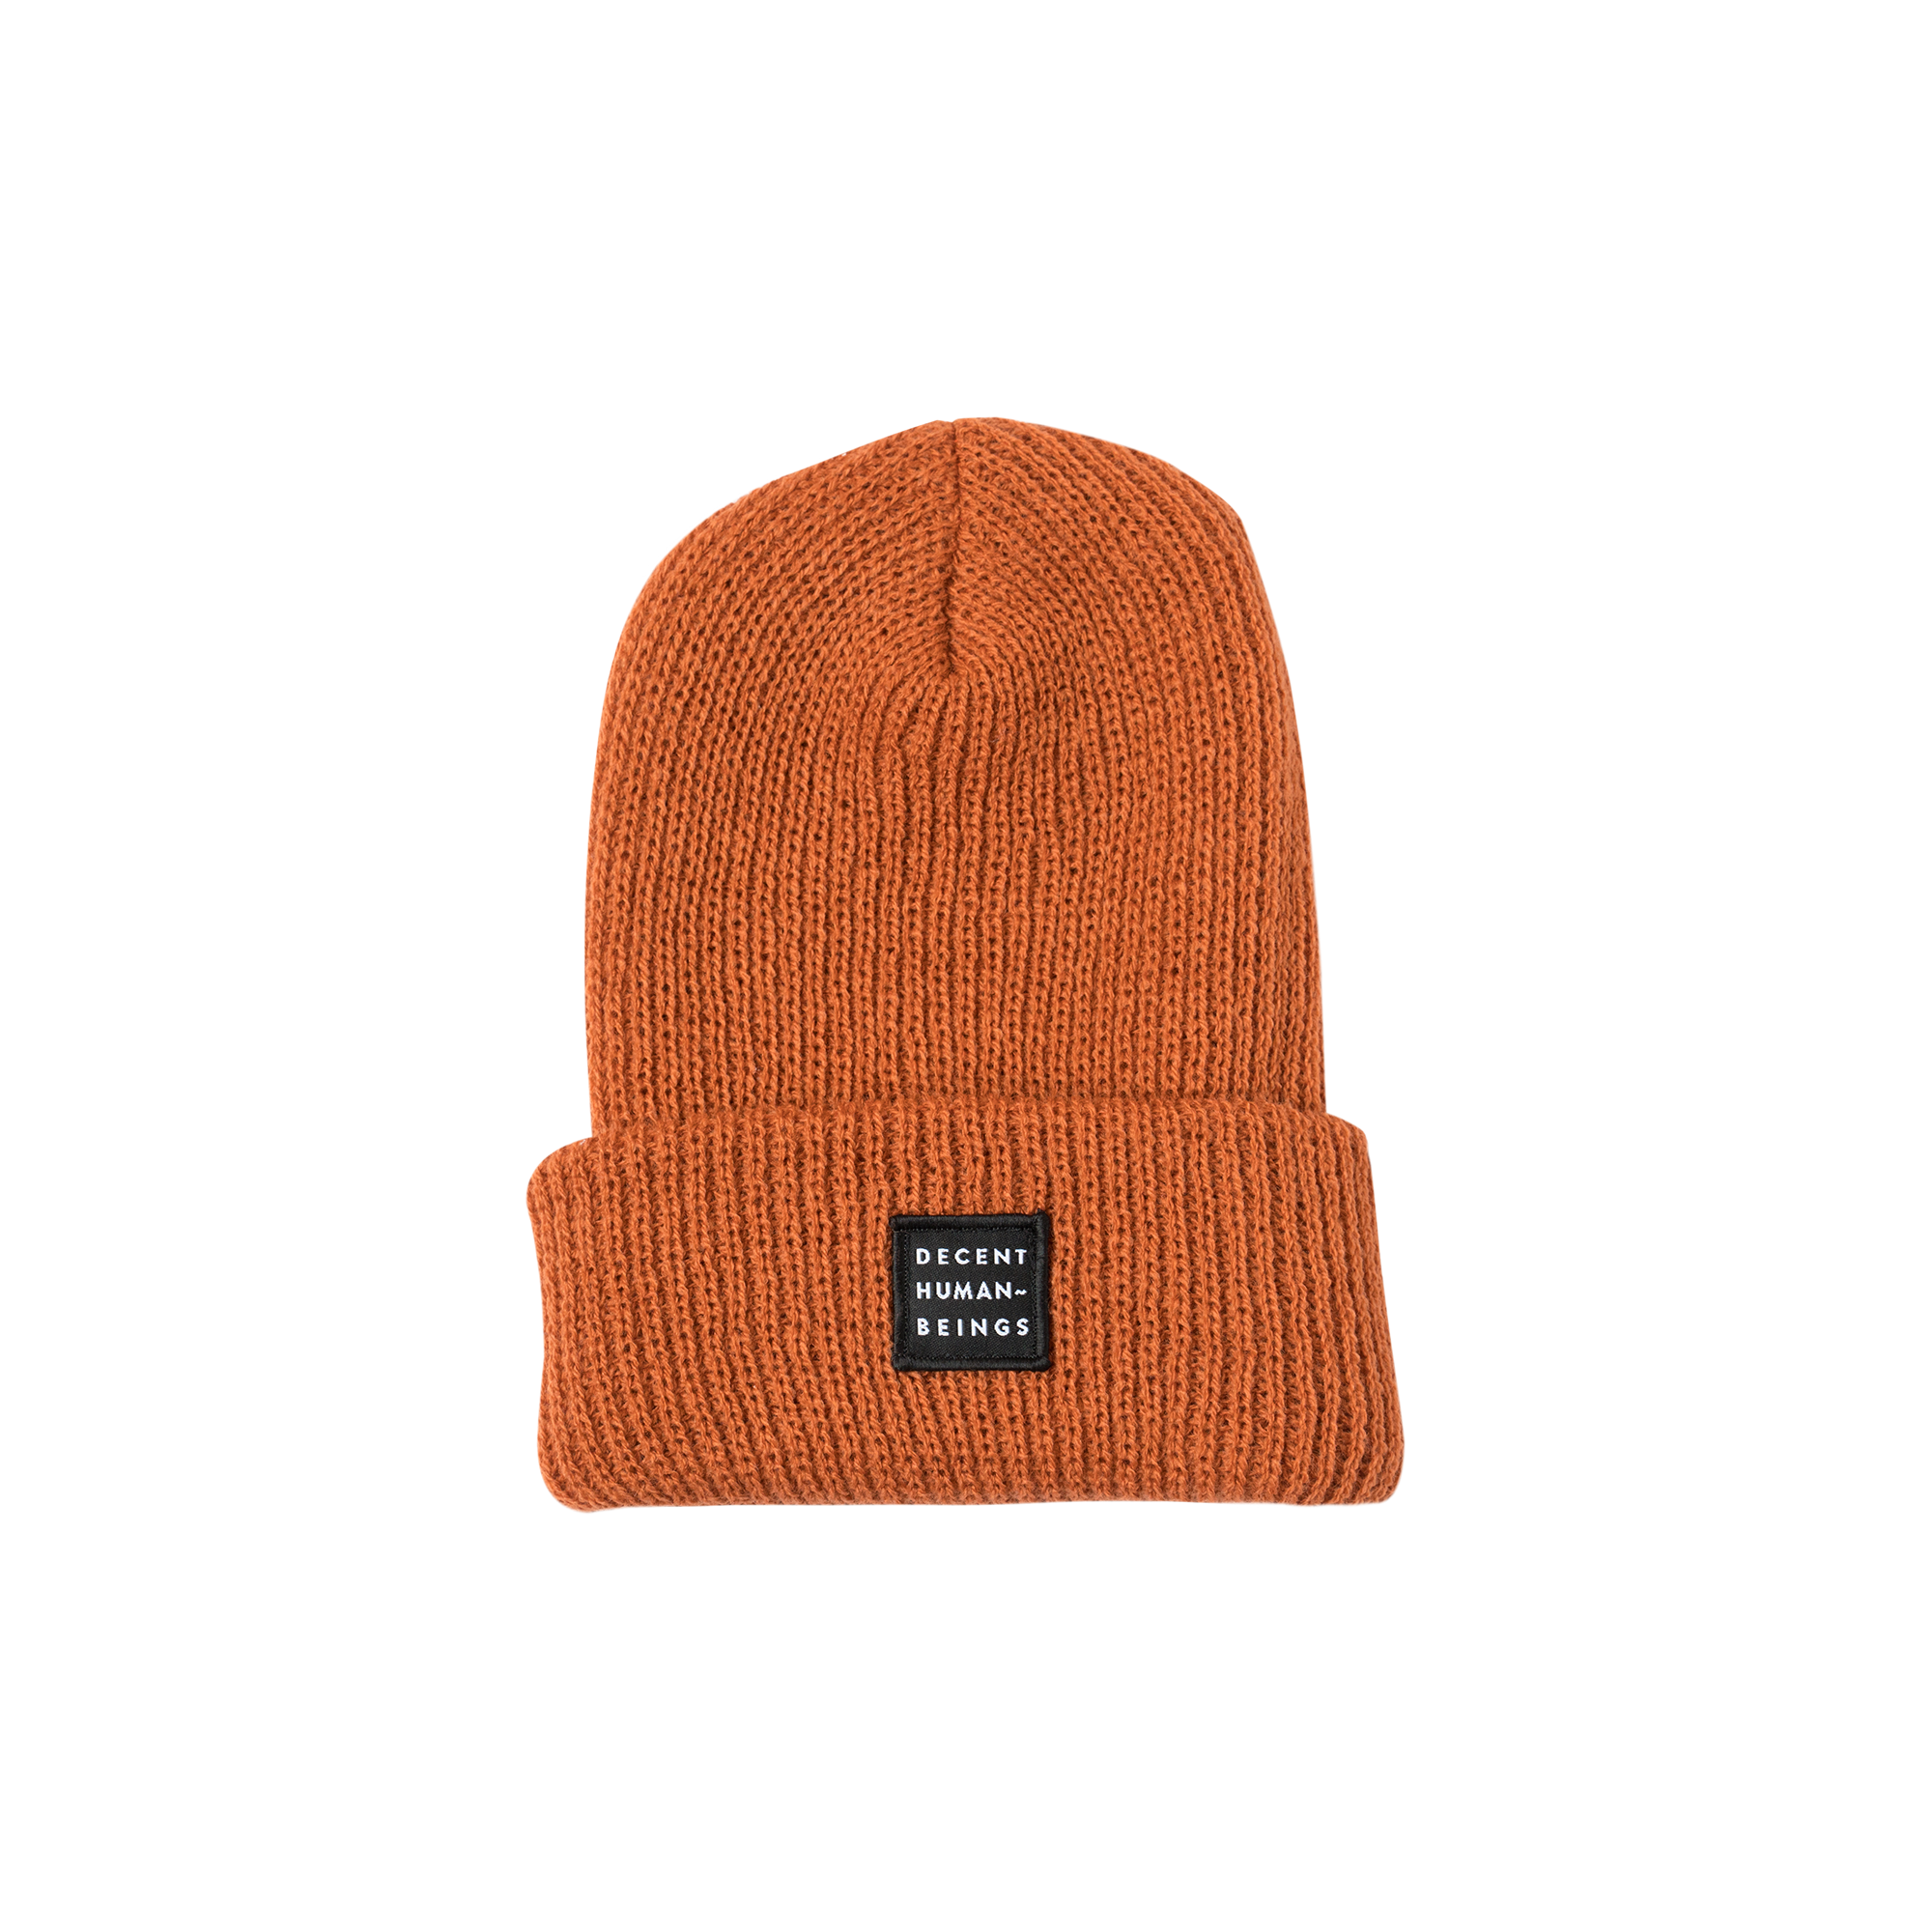 RIBBED KNIT LOGO PATCH BEANIE - BURNT ORANGE